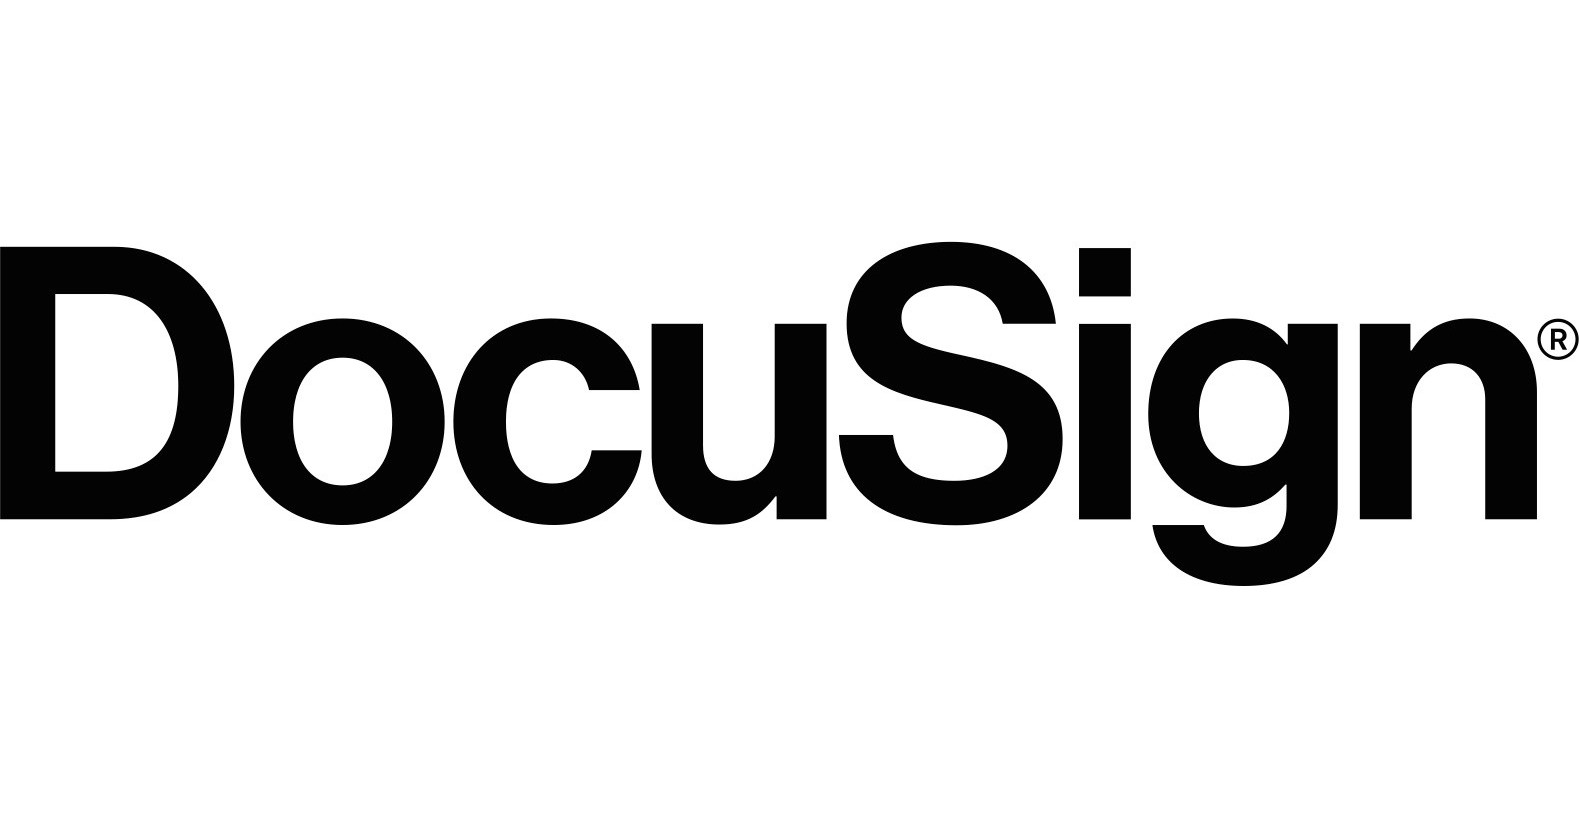 DocuSign Announces Pricing of Upsized $500 Million Convertible Senior Notes Offering